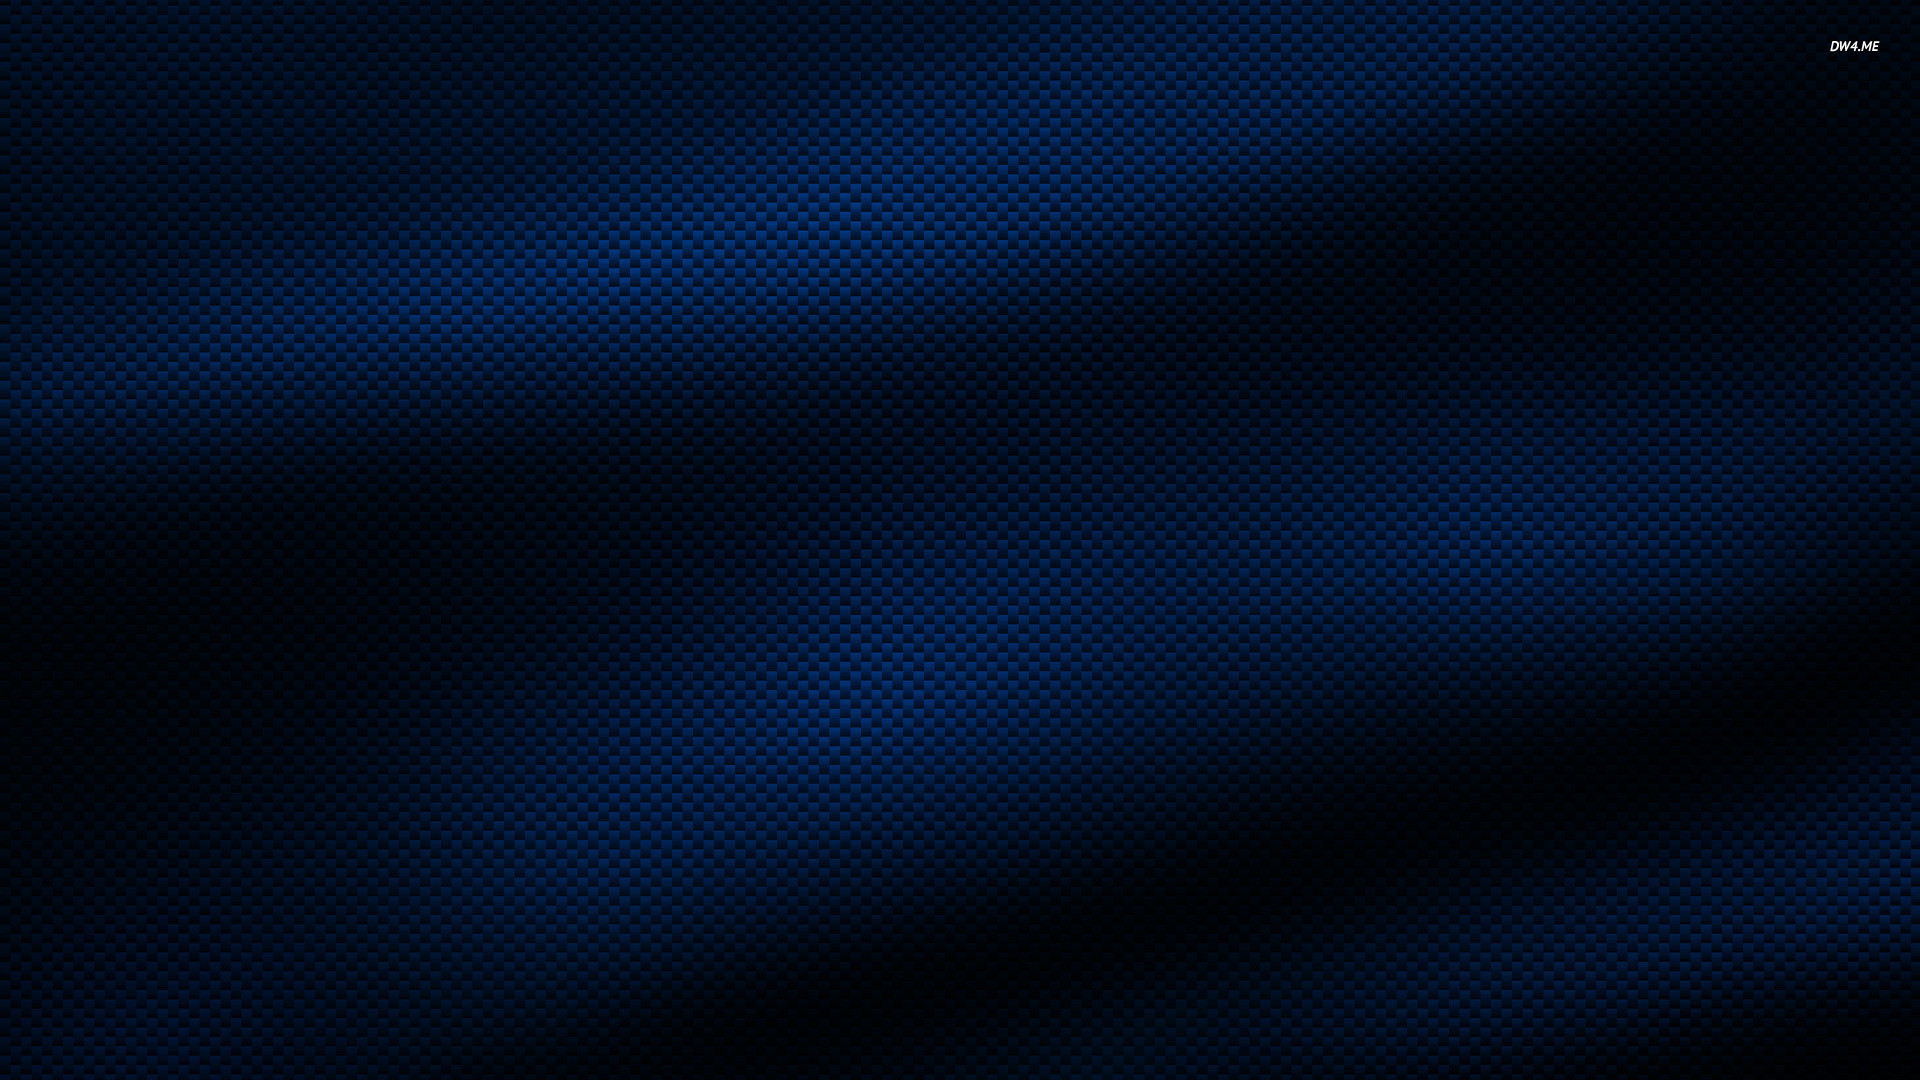 1920x1080 Carbon fiber fabric wallpaper - 679777